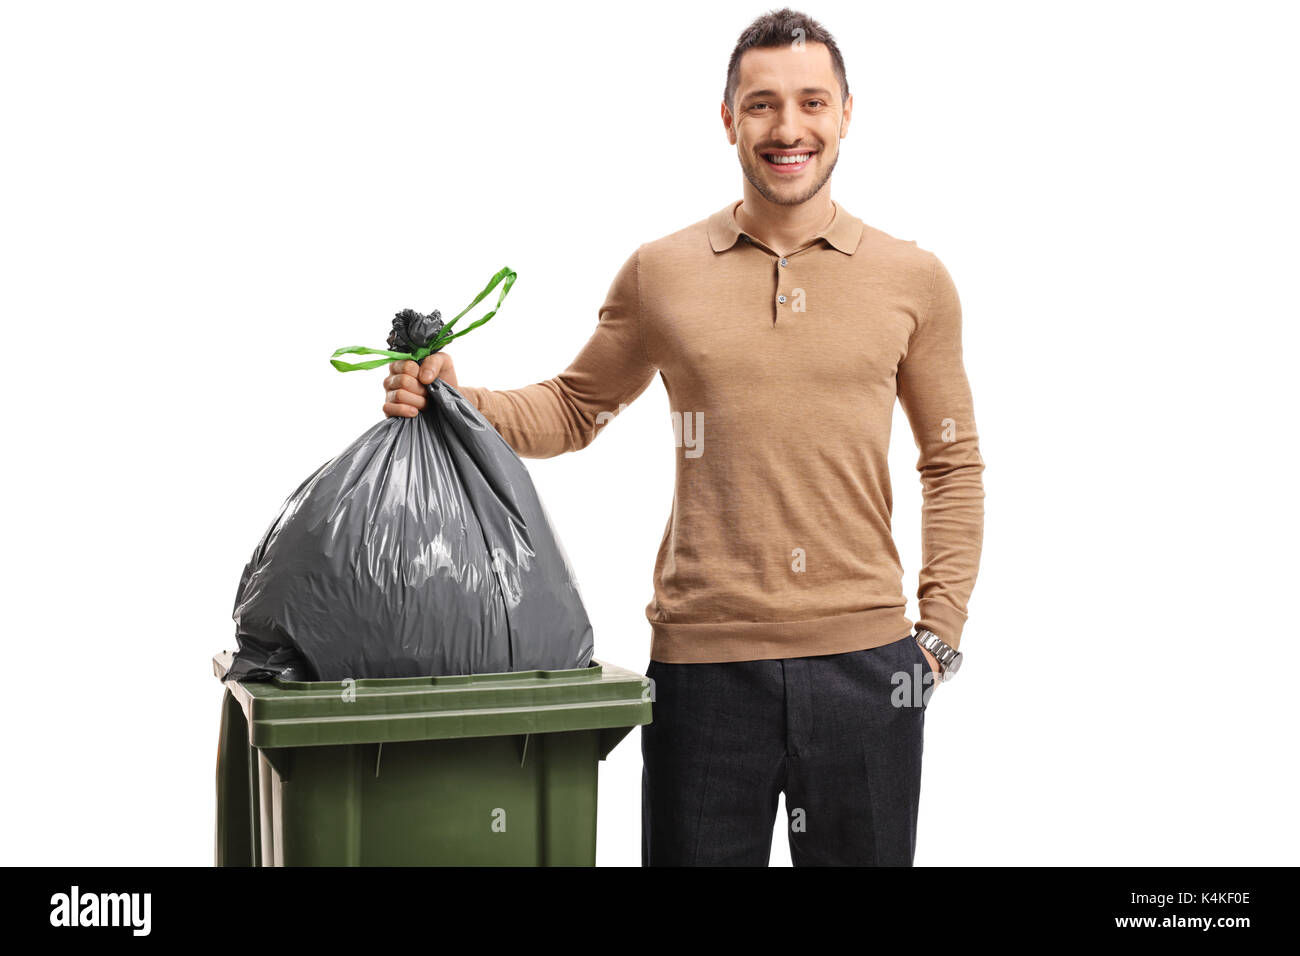 Young man throwing out the garbage and smiling isolated on white background - Stock Image